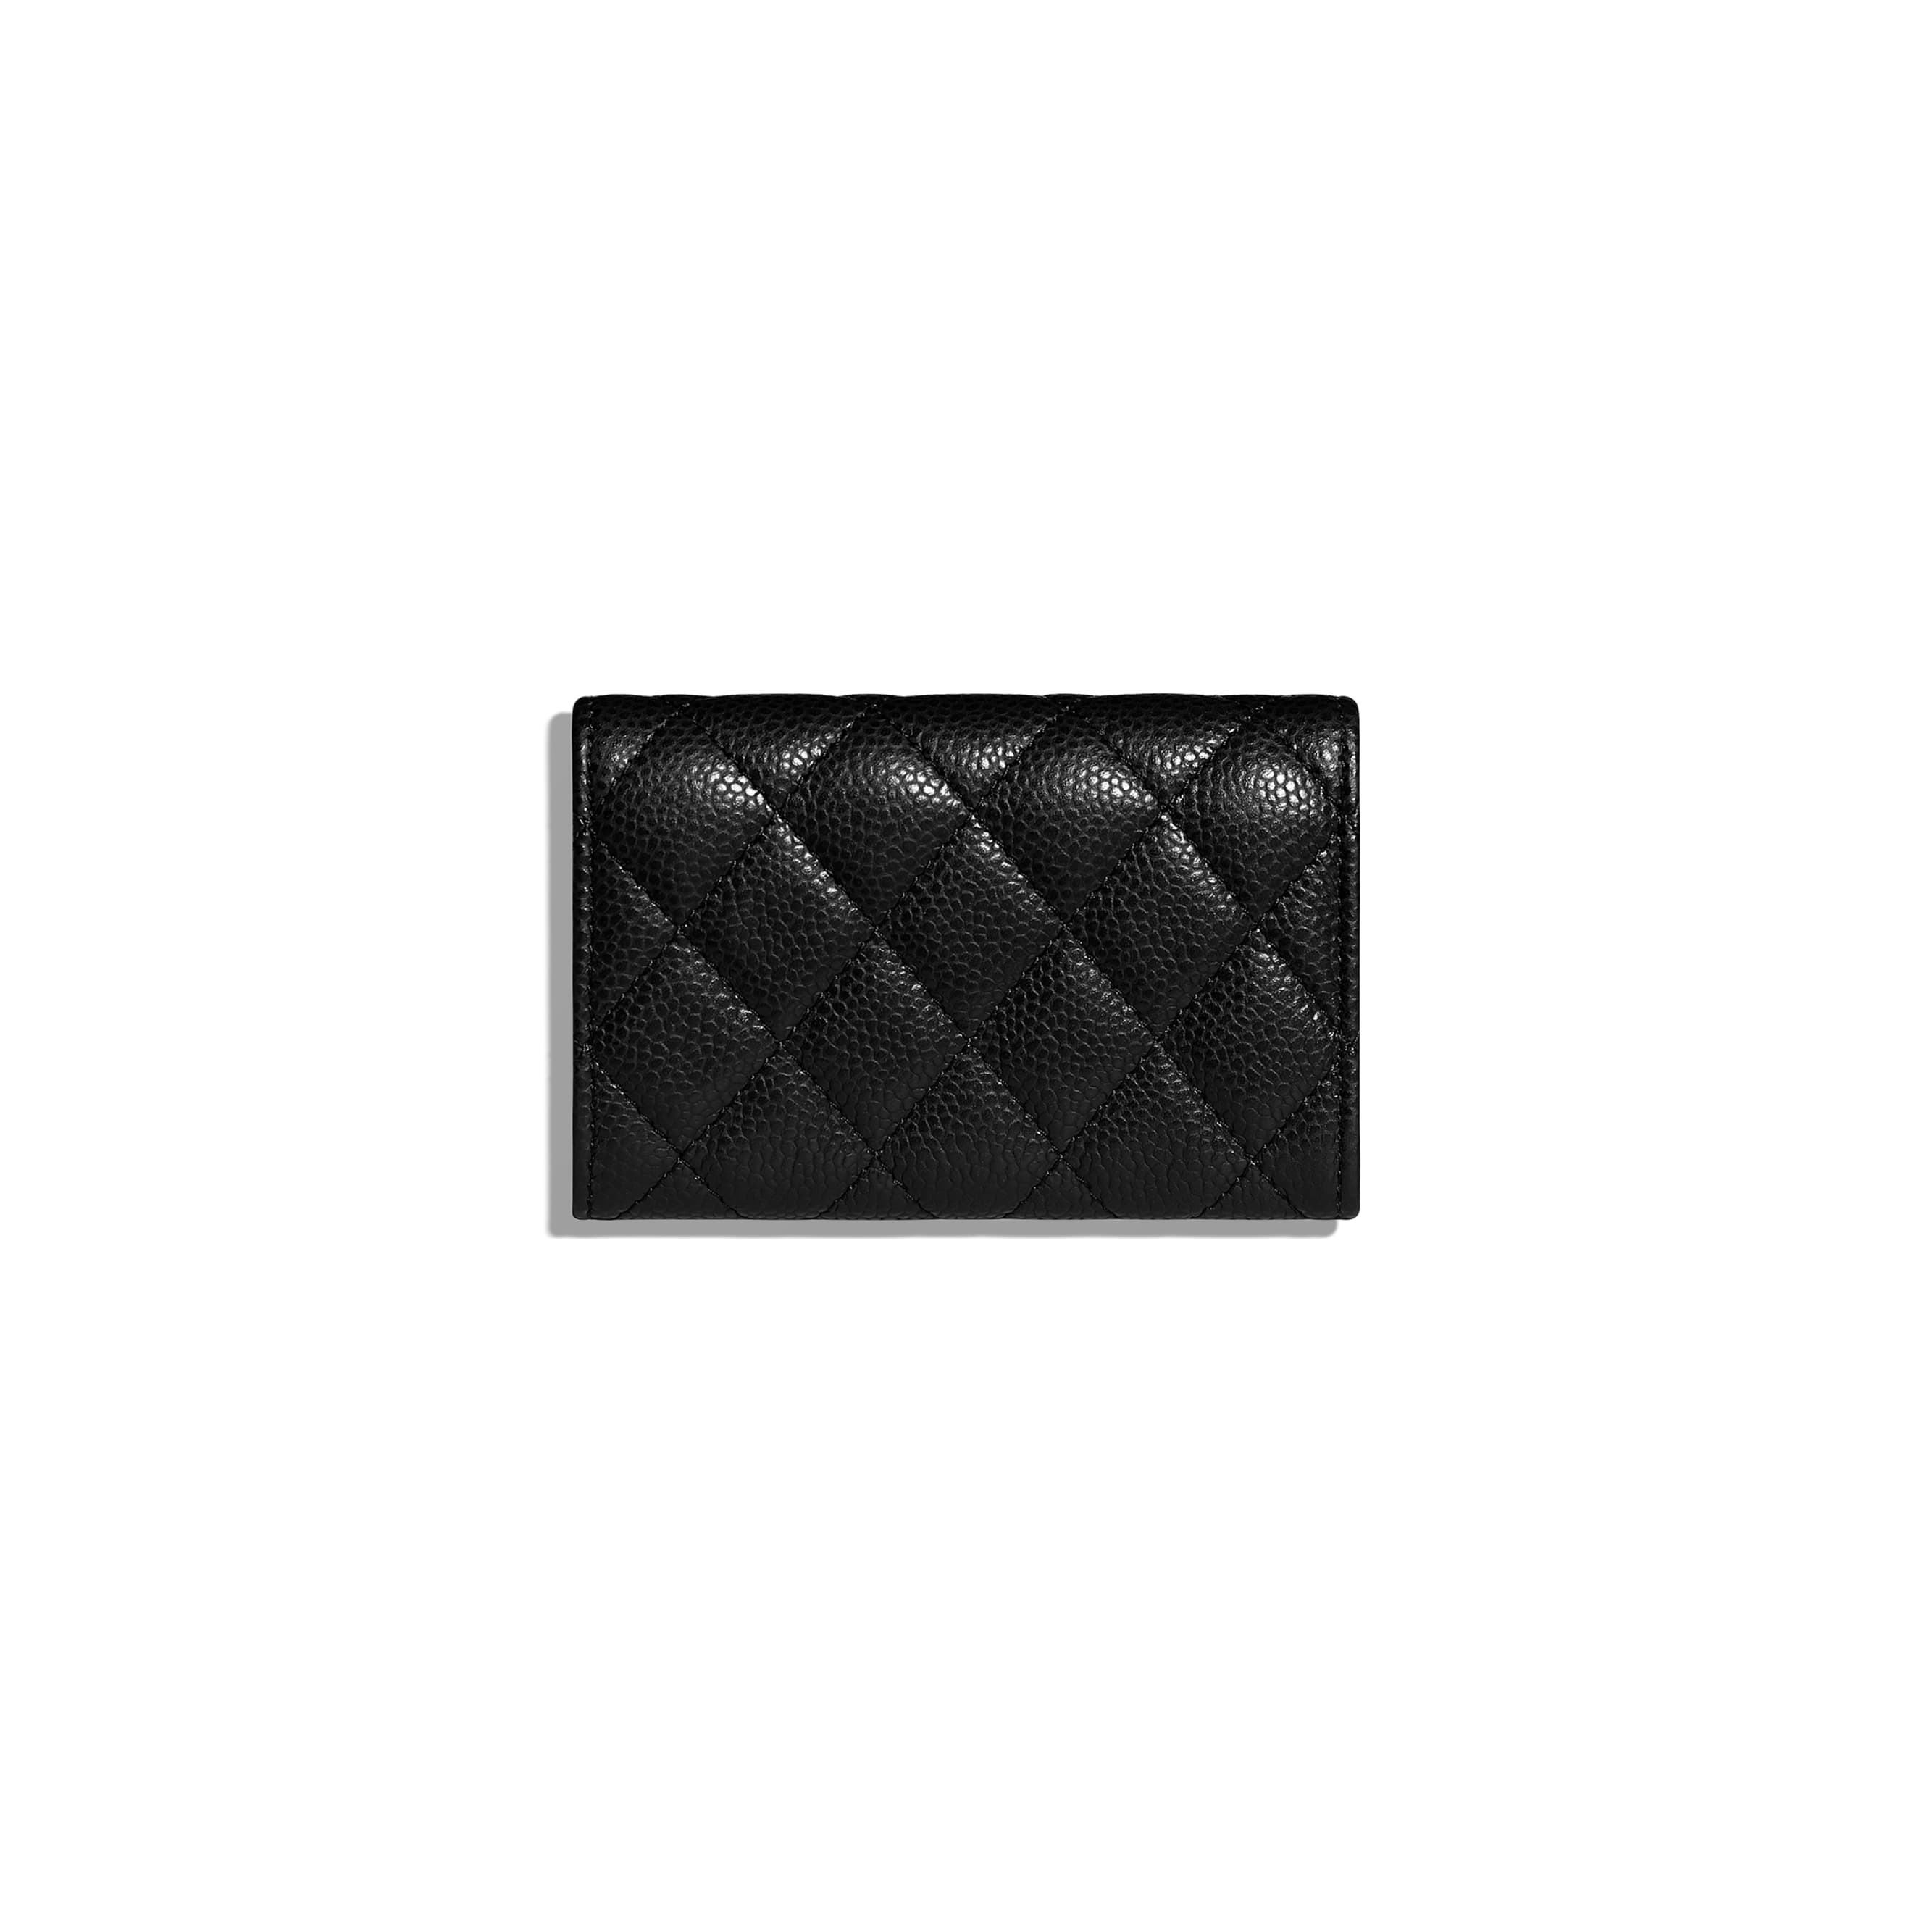 Classic Card Holder - Black - Grained Calfskin & Gold-Tone Metal - CHANEL - Alternative view - see standard sized version